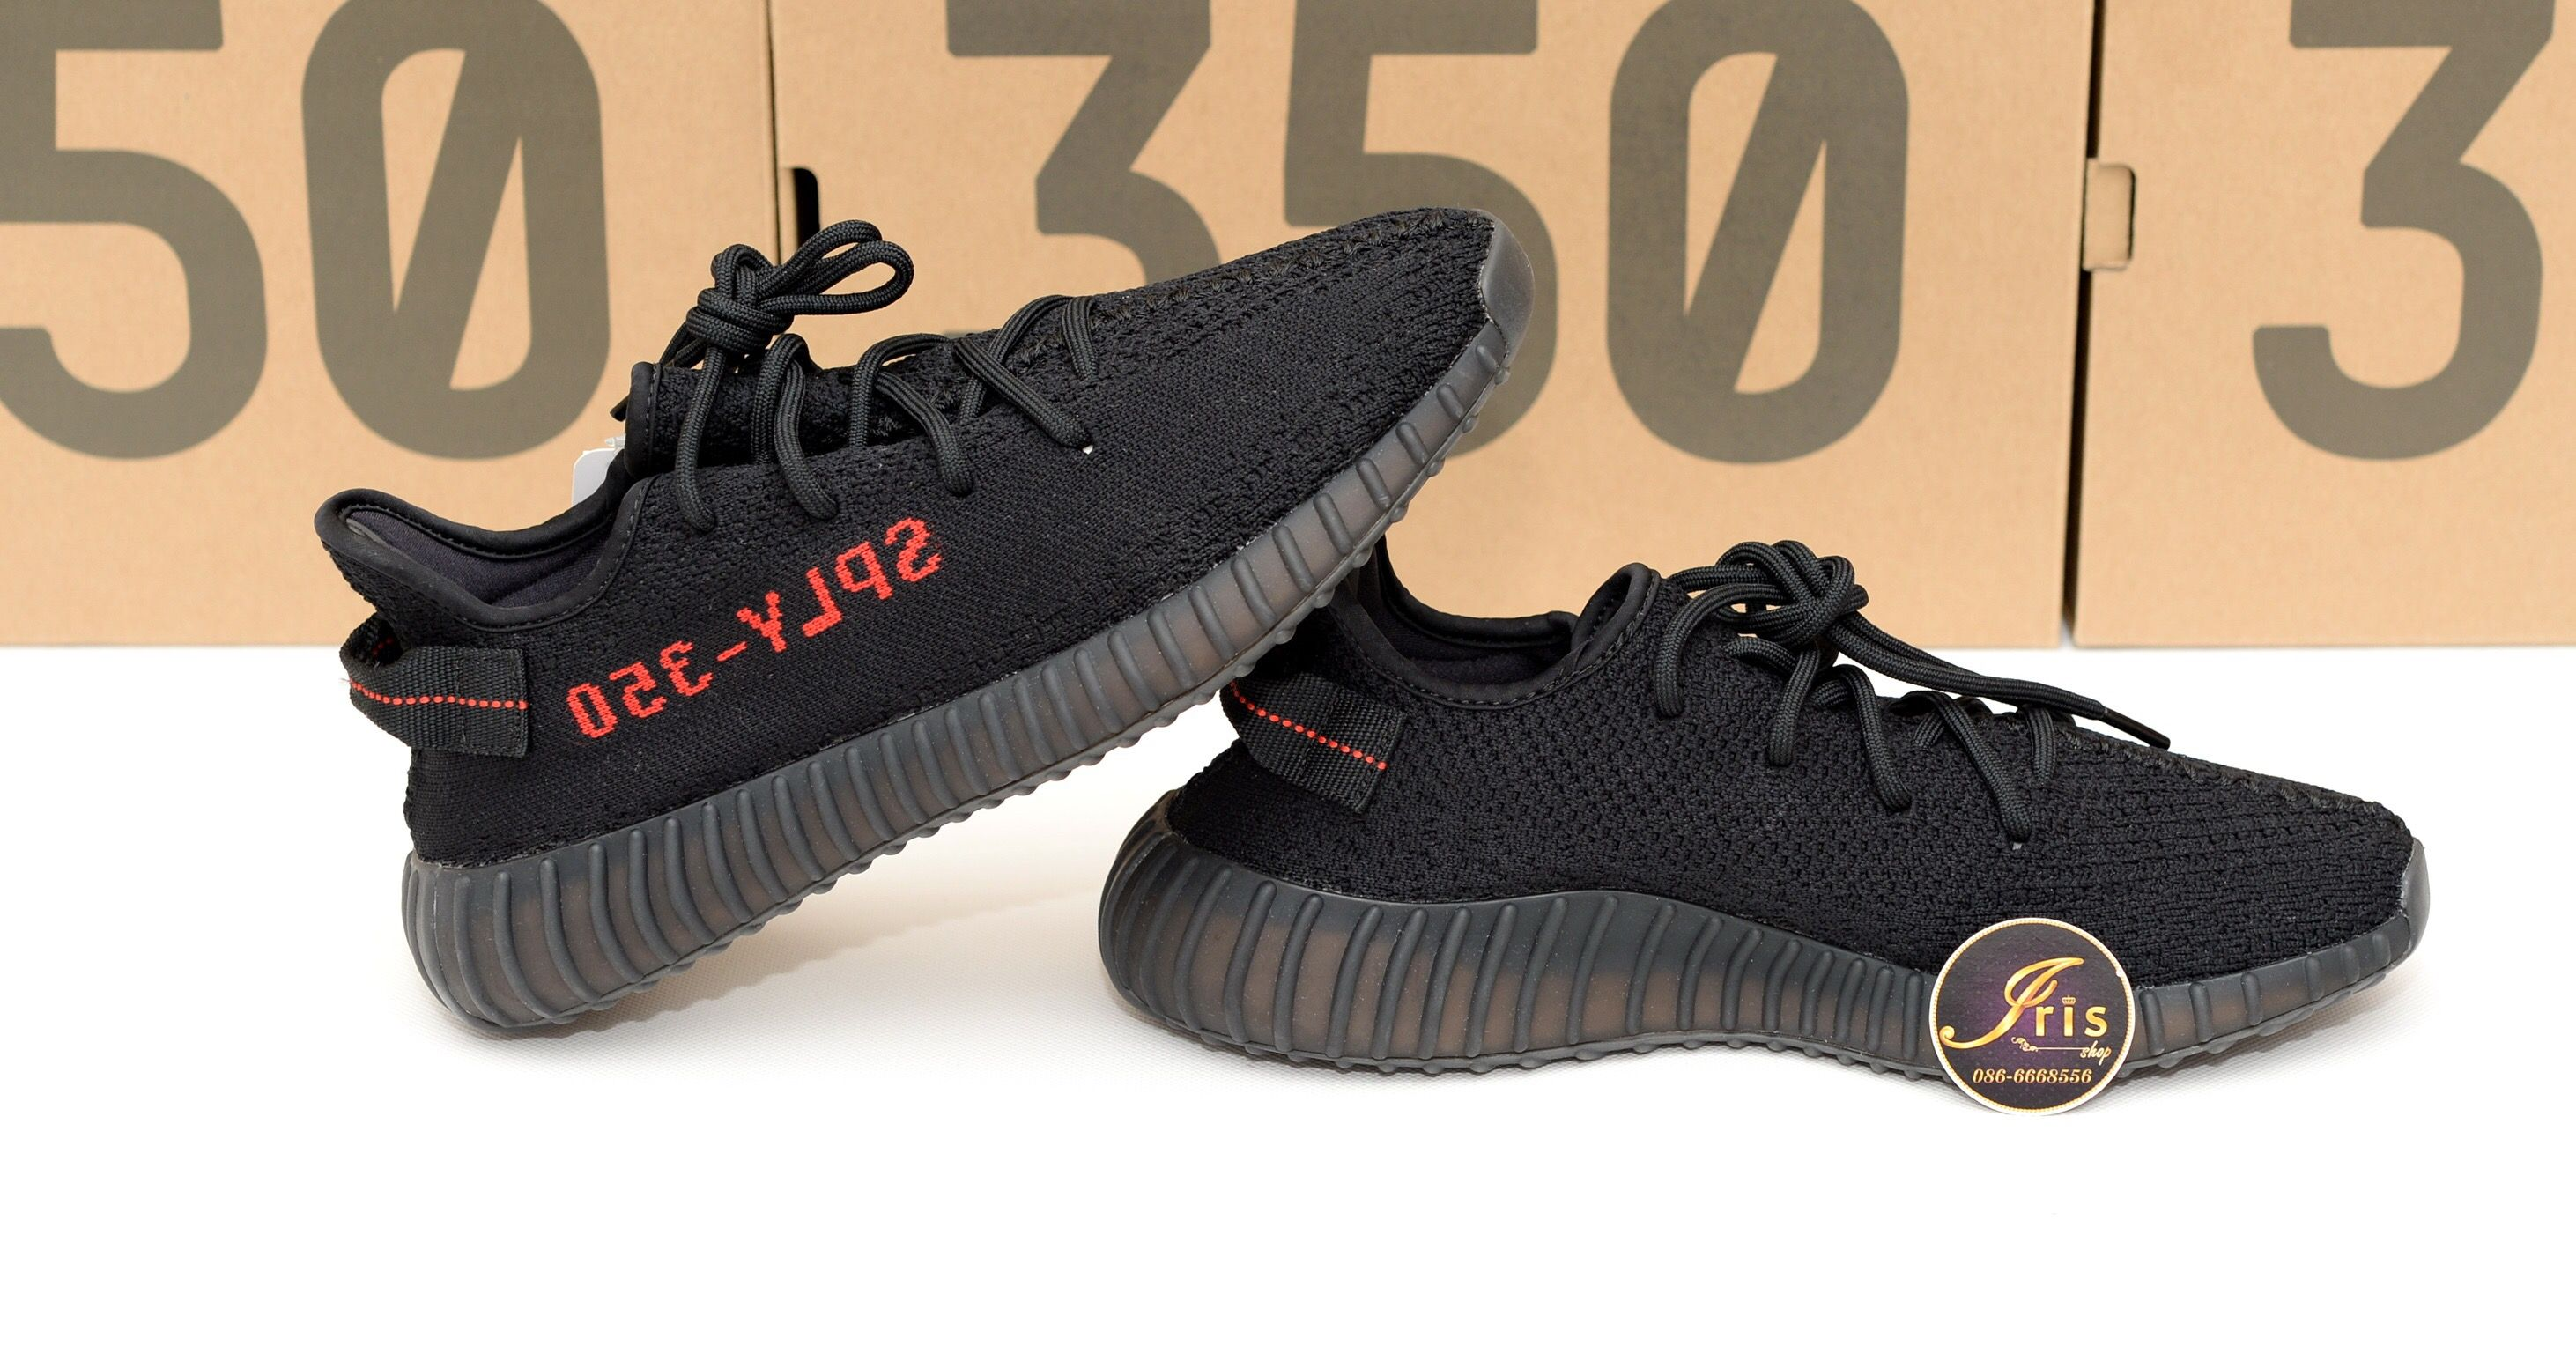 Nib Adidas Yeezy Boost 350 V2 Core Black/Red Adult Size 7 Us Men (8.5 Us Women) Multi-Colordas